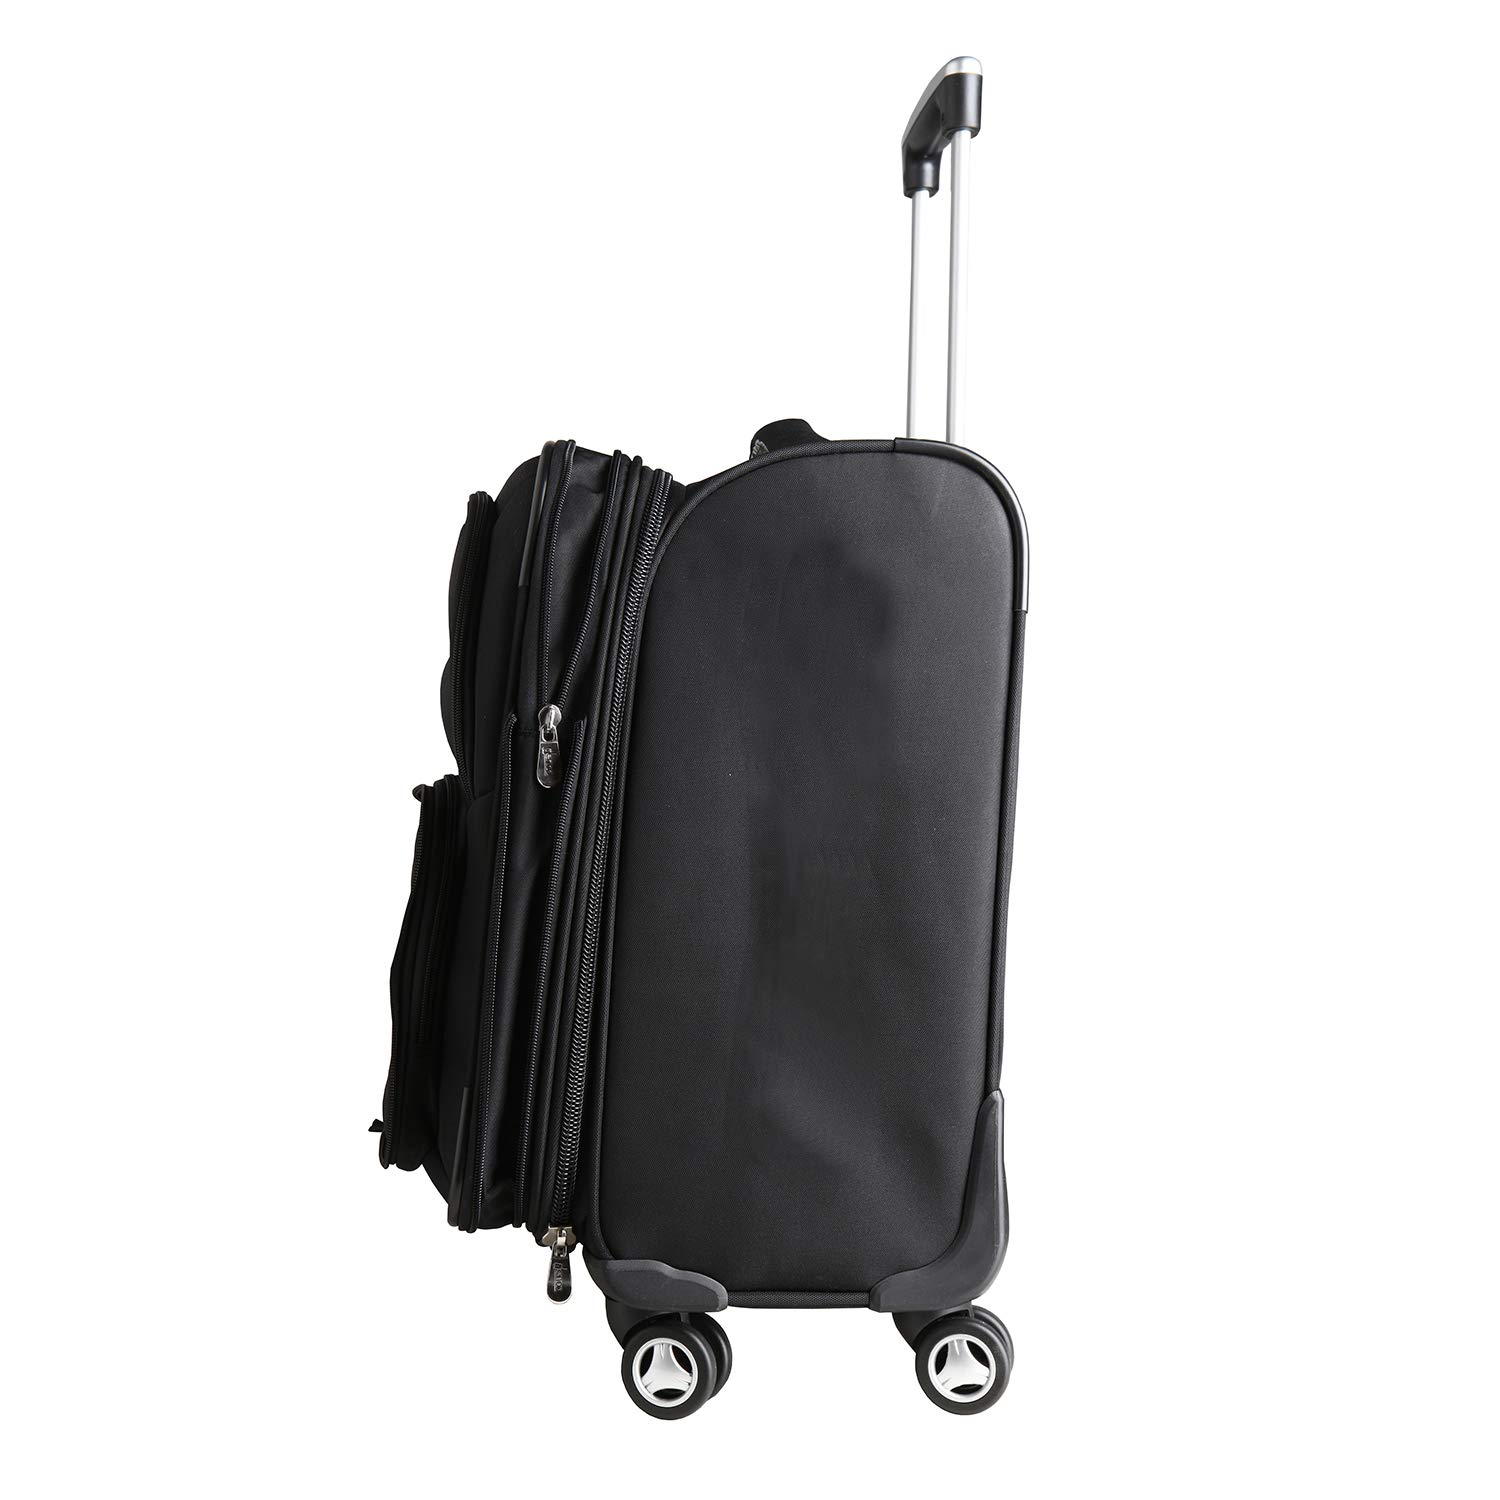 Denco NBA Charlotte Hornets Carry-On Luggage Spinner by Denco (Image #6)